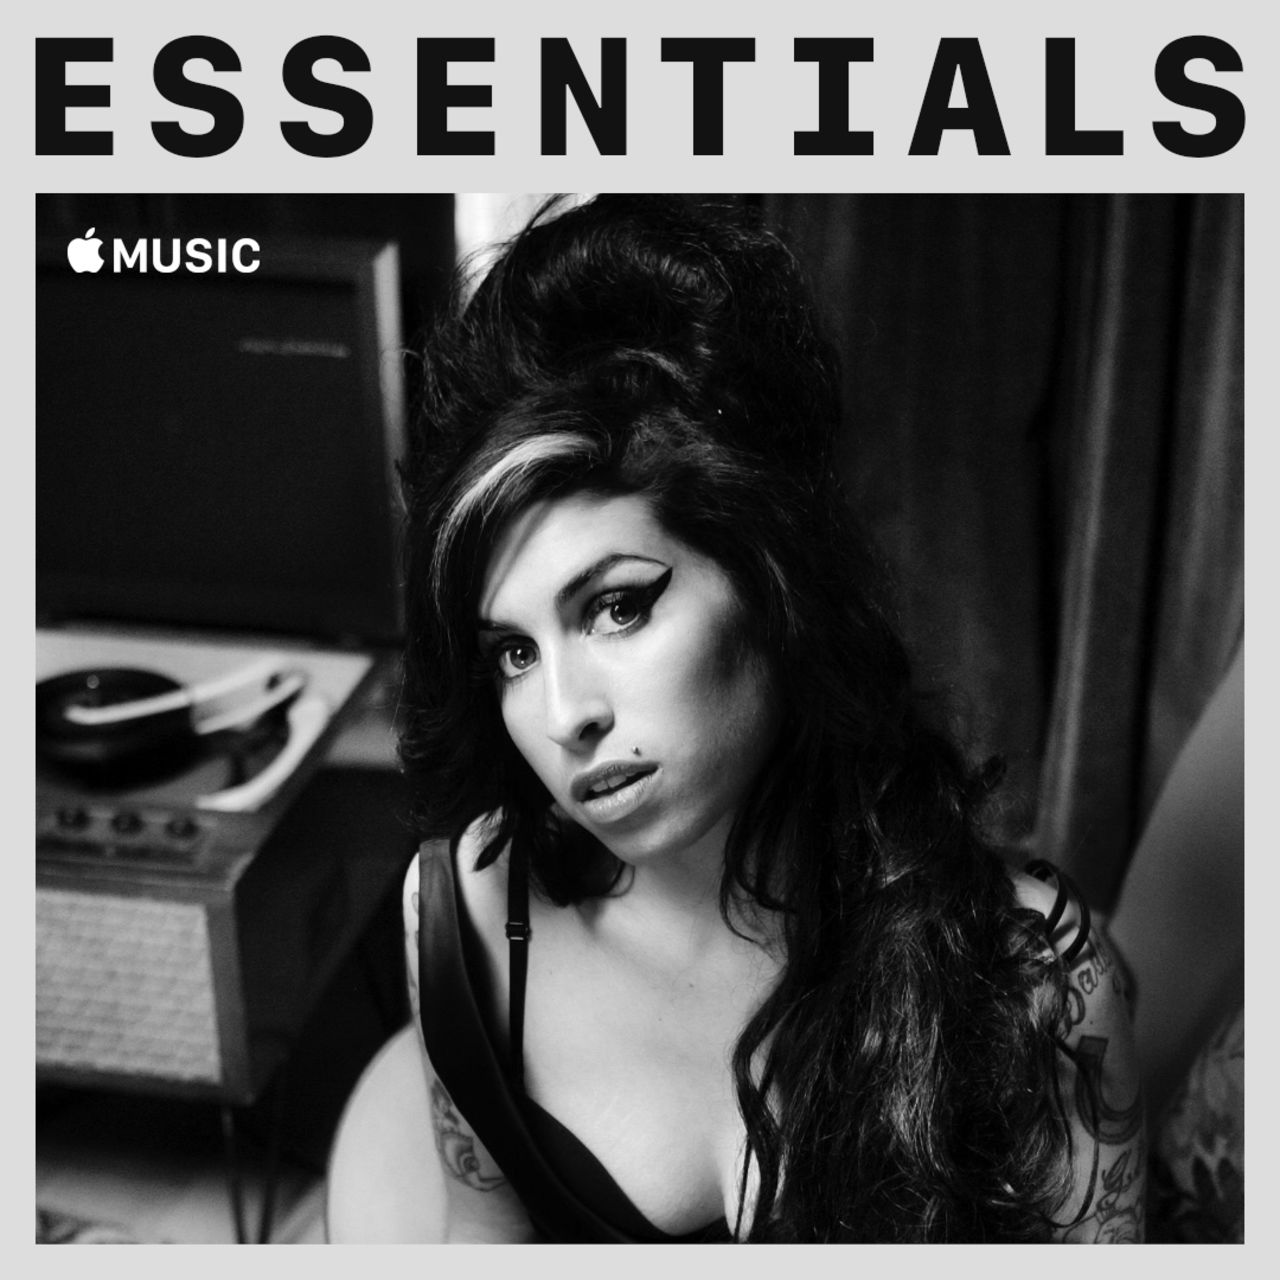 Amy winehouse essentials (2018) ( free download ) album musik.